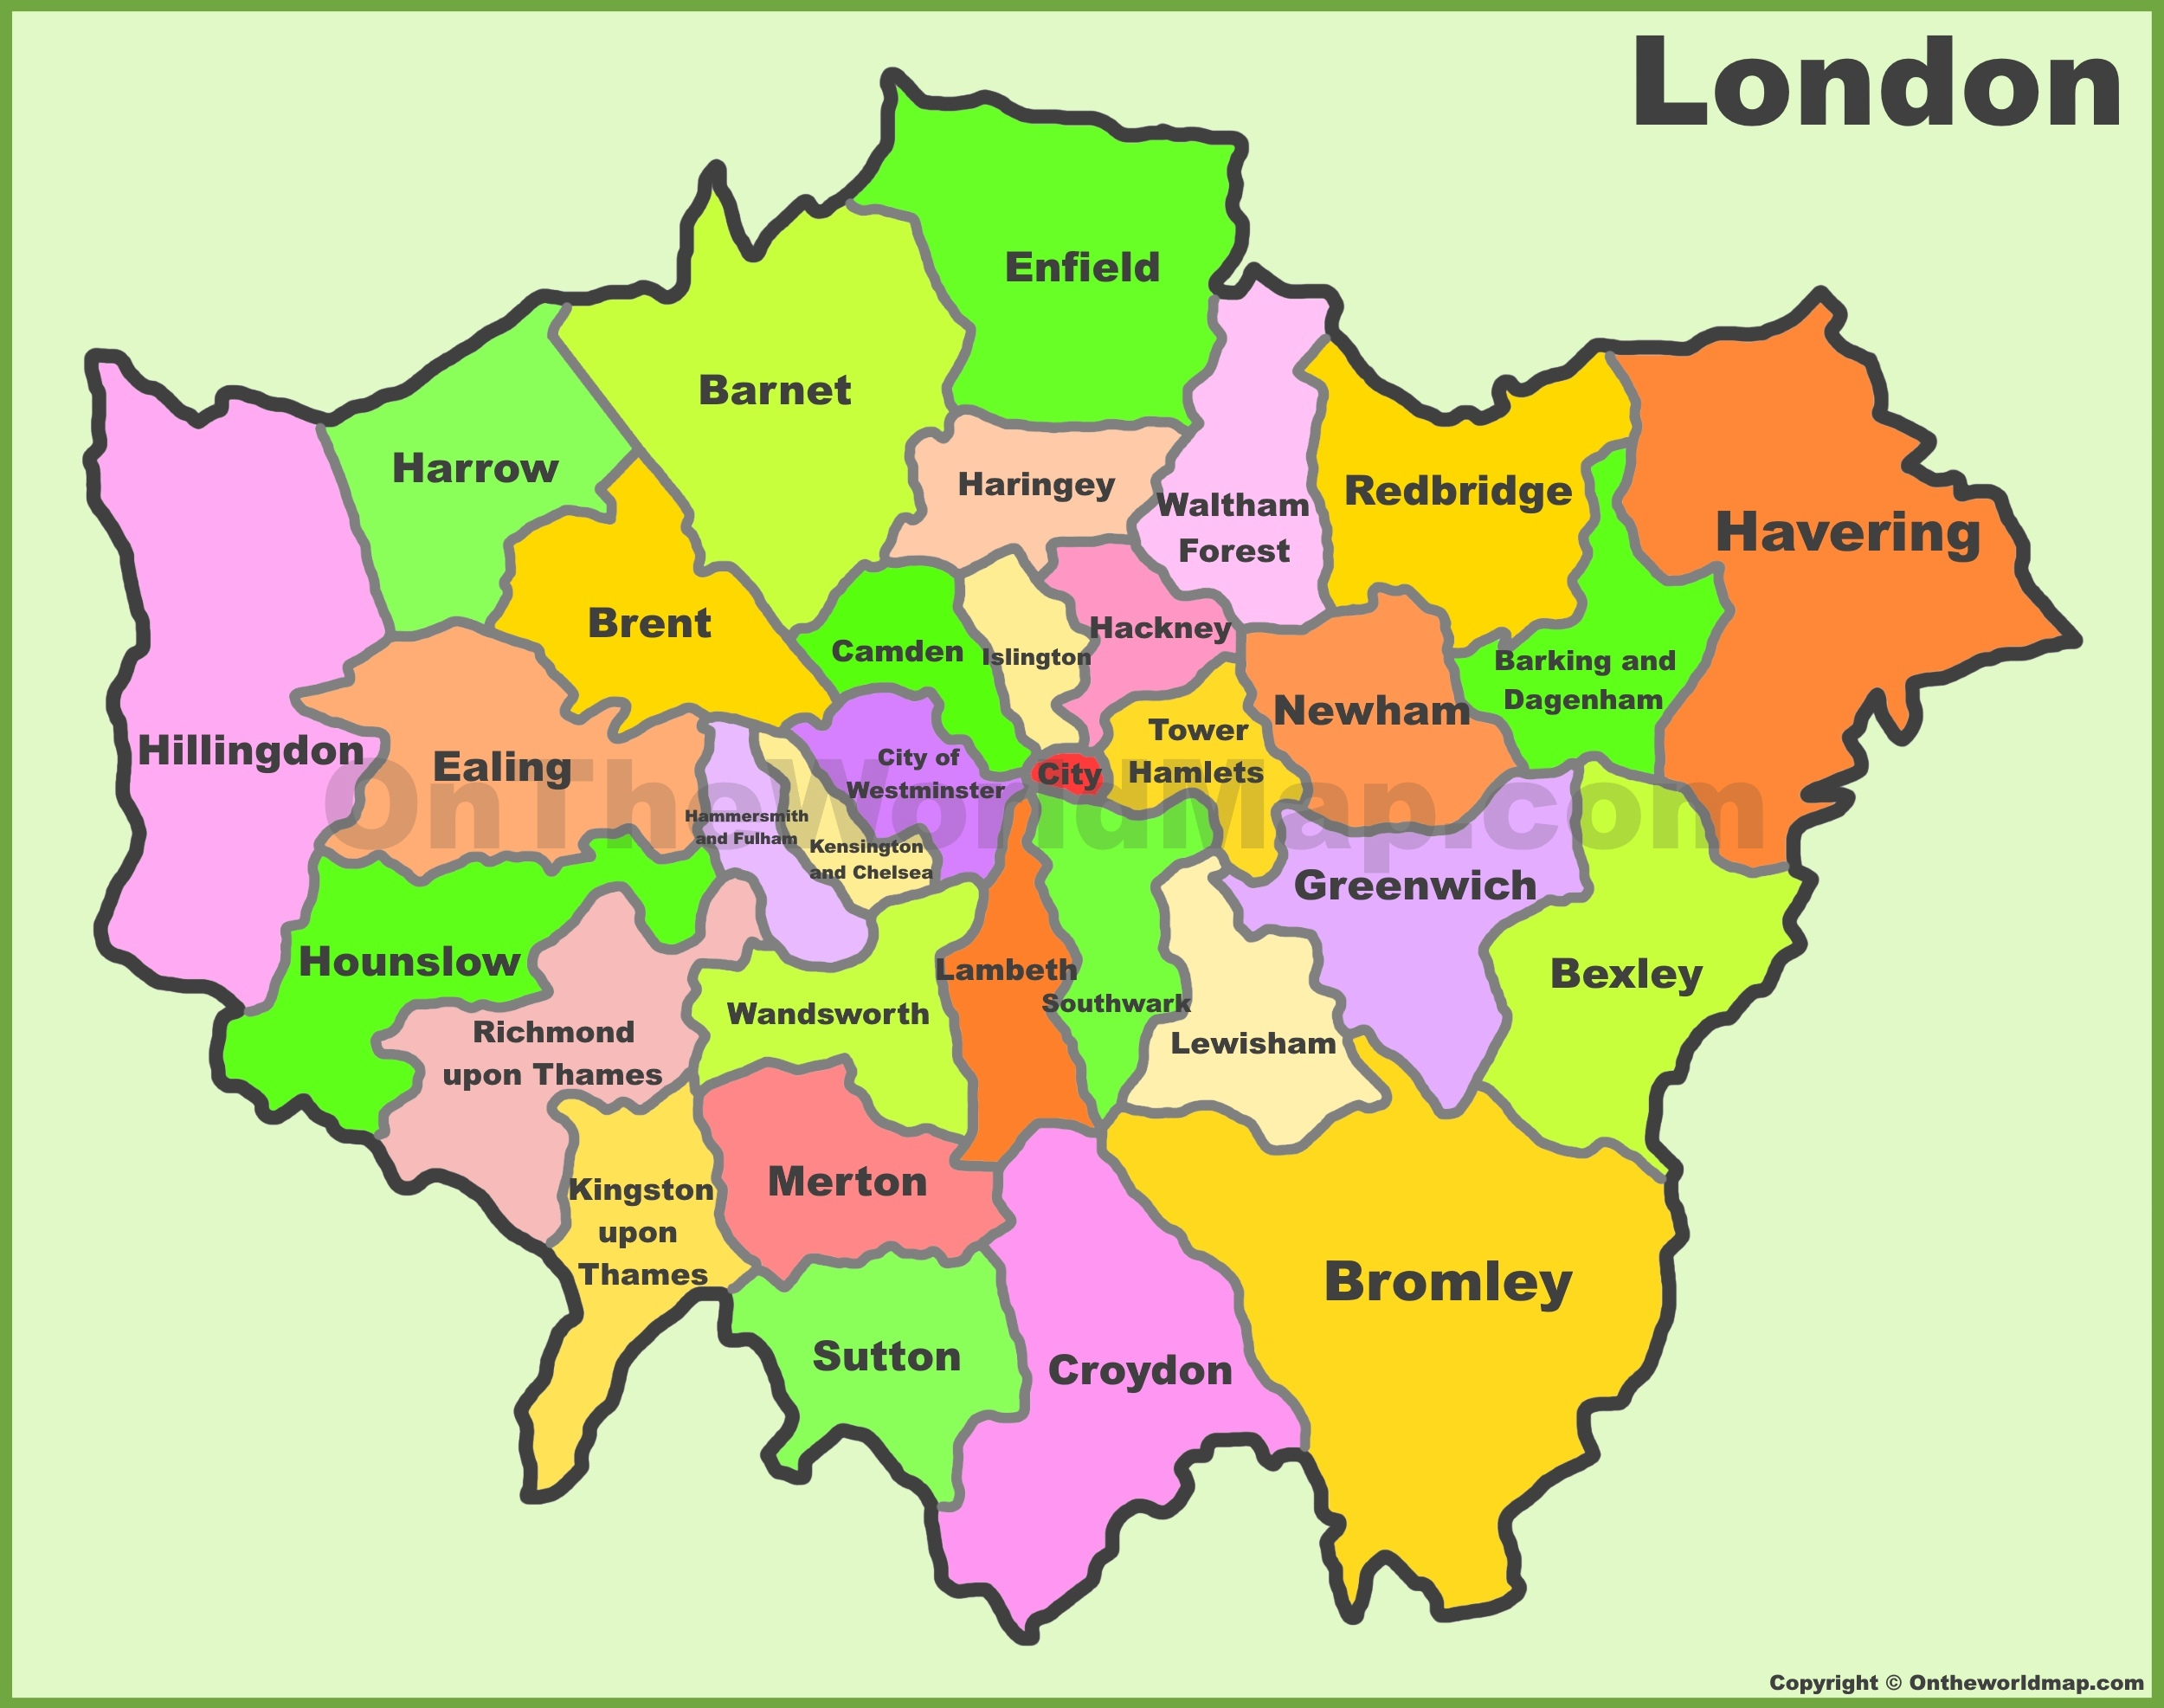 London boroughs map on london monitor, london united kingdom, europe map, lima peru map, london on a map, london suburbs map, tokyo japan map, london norway map, london germany map, bay of plenty new zealand map, roman jerusalem map, london tn map, united kingdom map, london tube map, london sky pool, london england, madrid spain map, london fallen angel, england map, london rex,